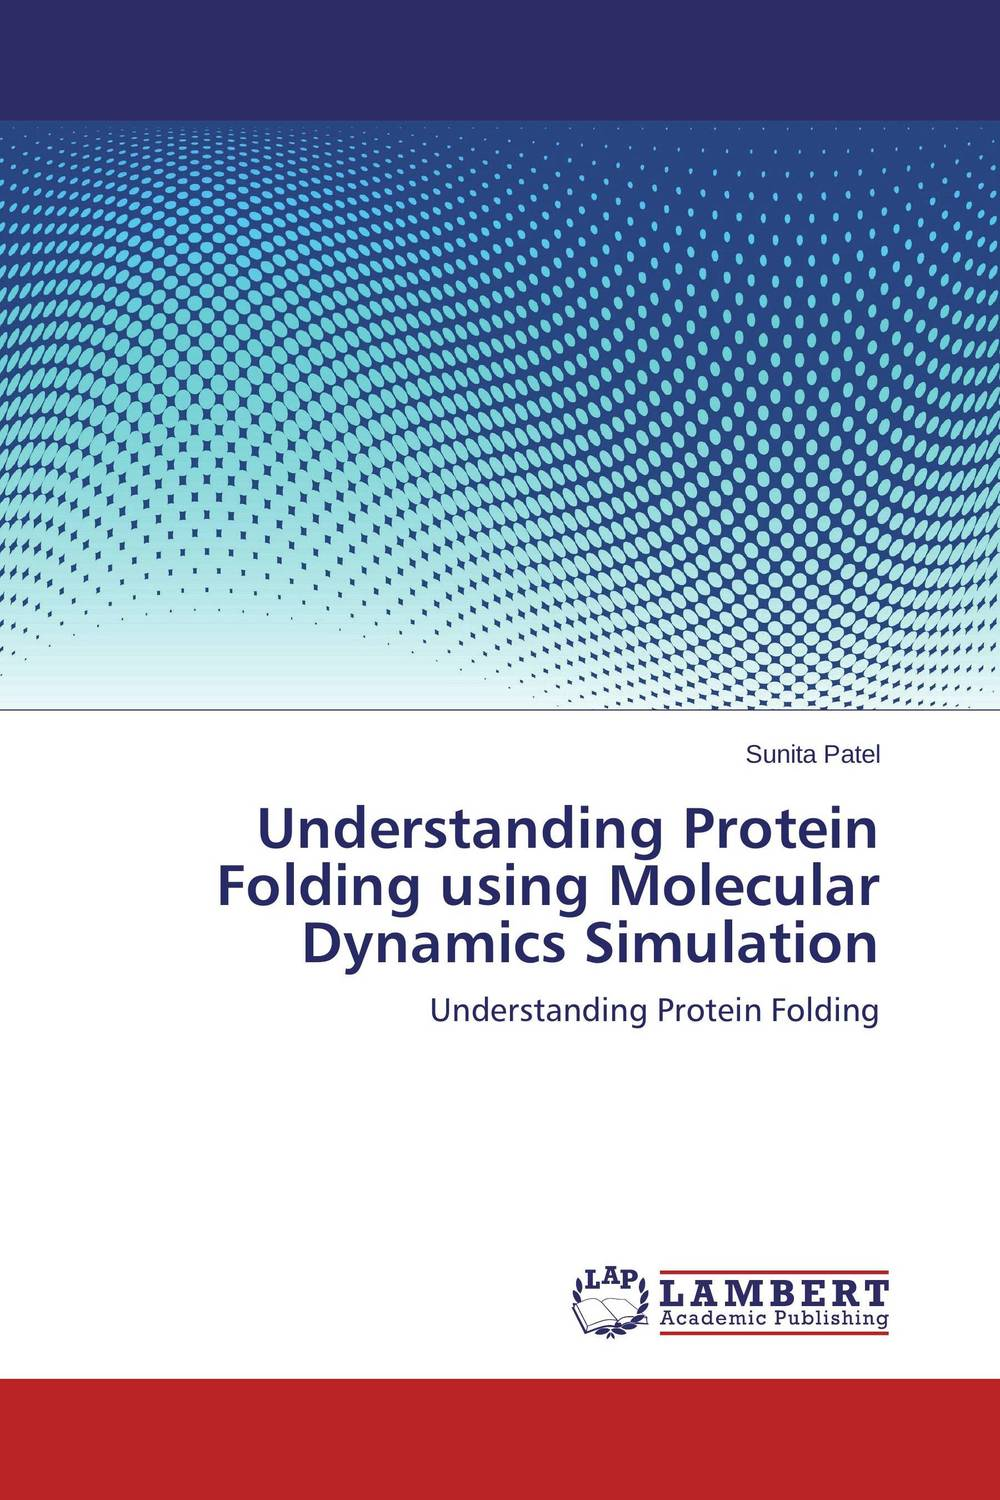 Understanding Protein Folding using Molecular Dynamics Simulation bioinformatic approaches to structure and function of protein